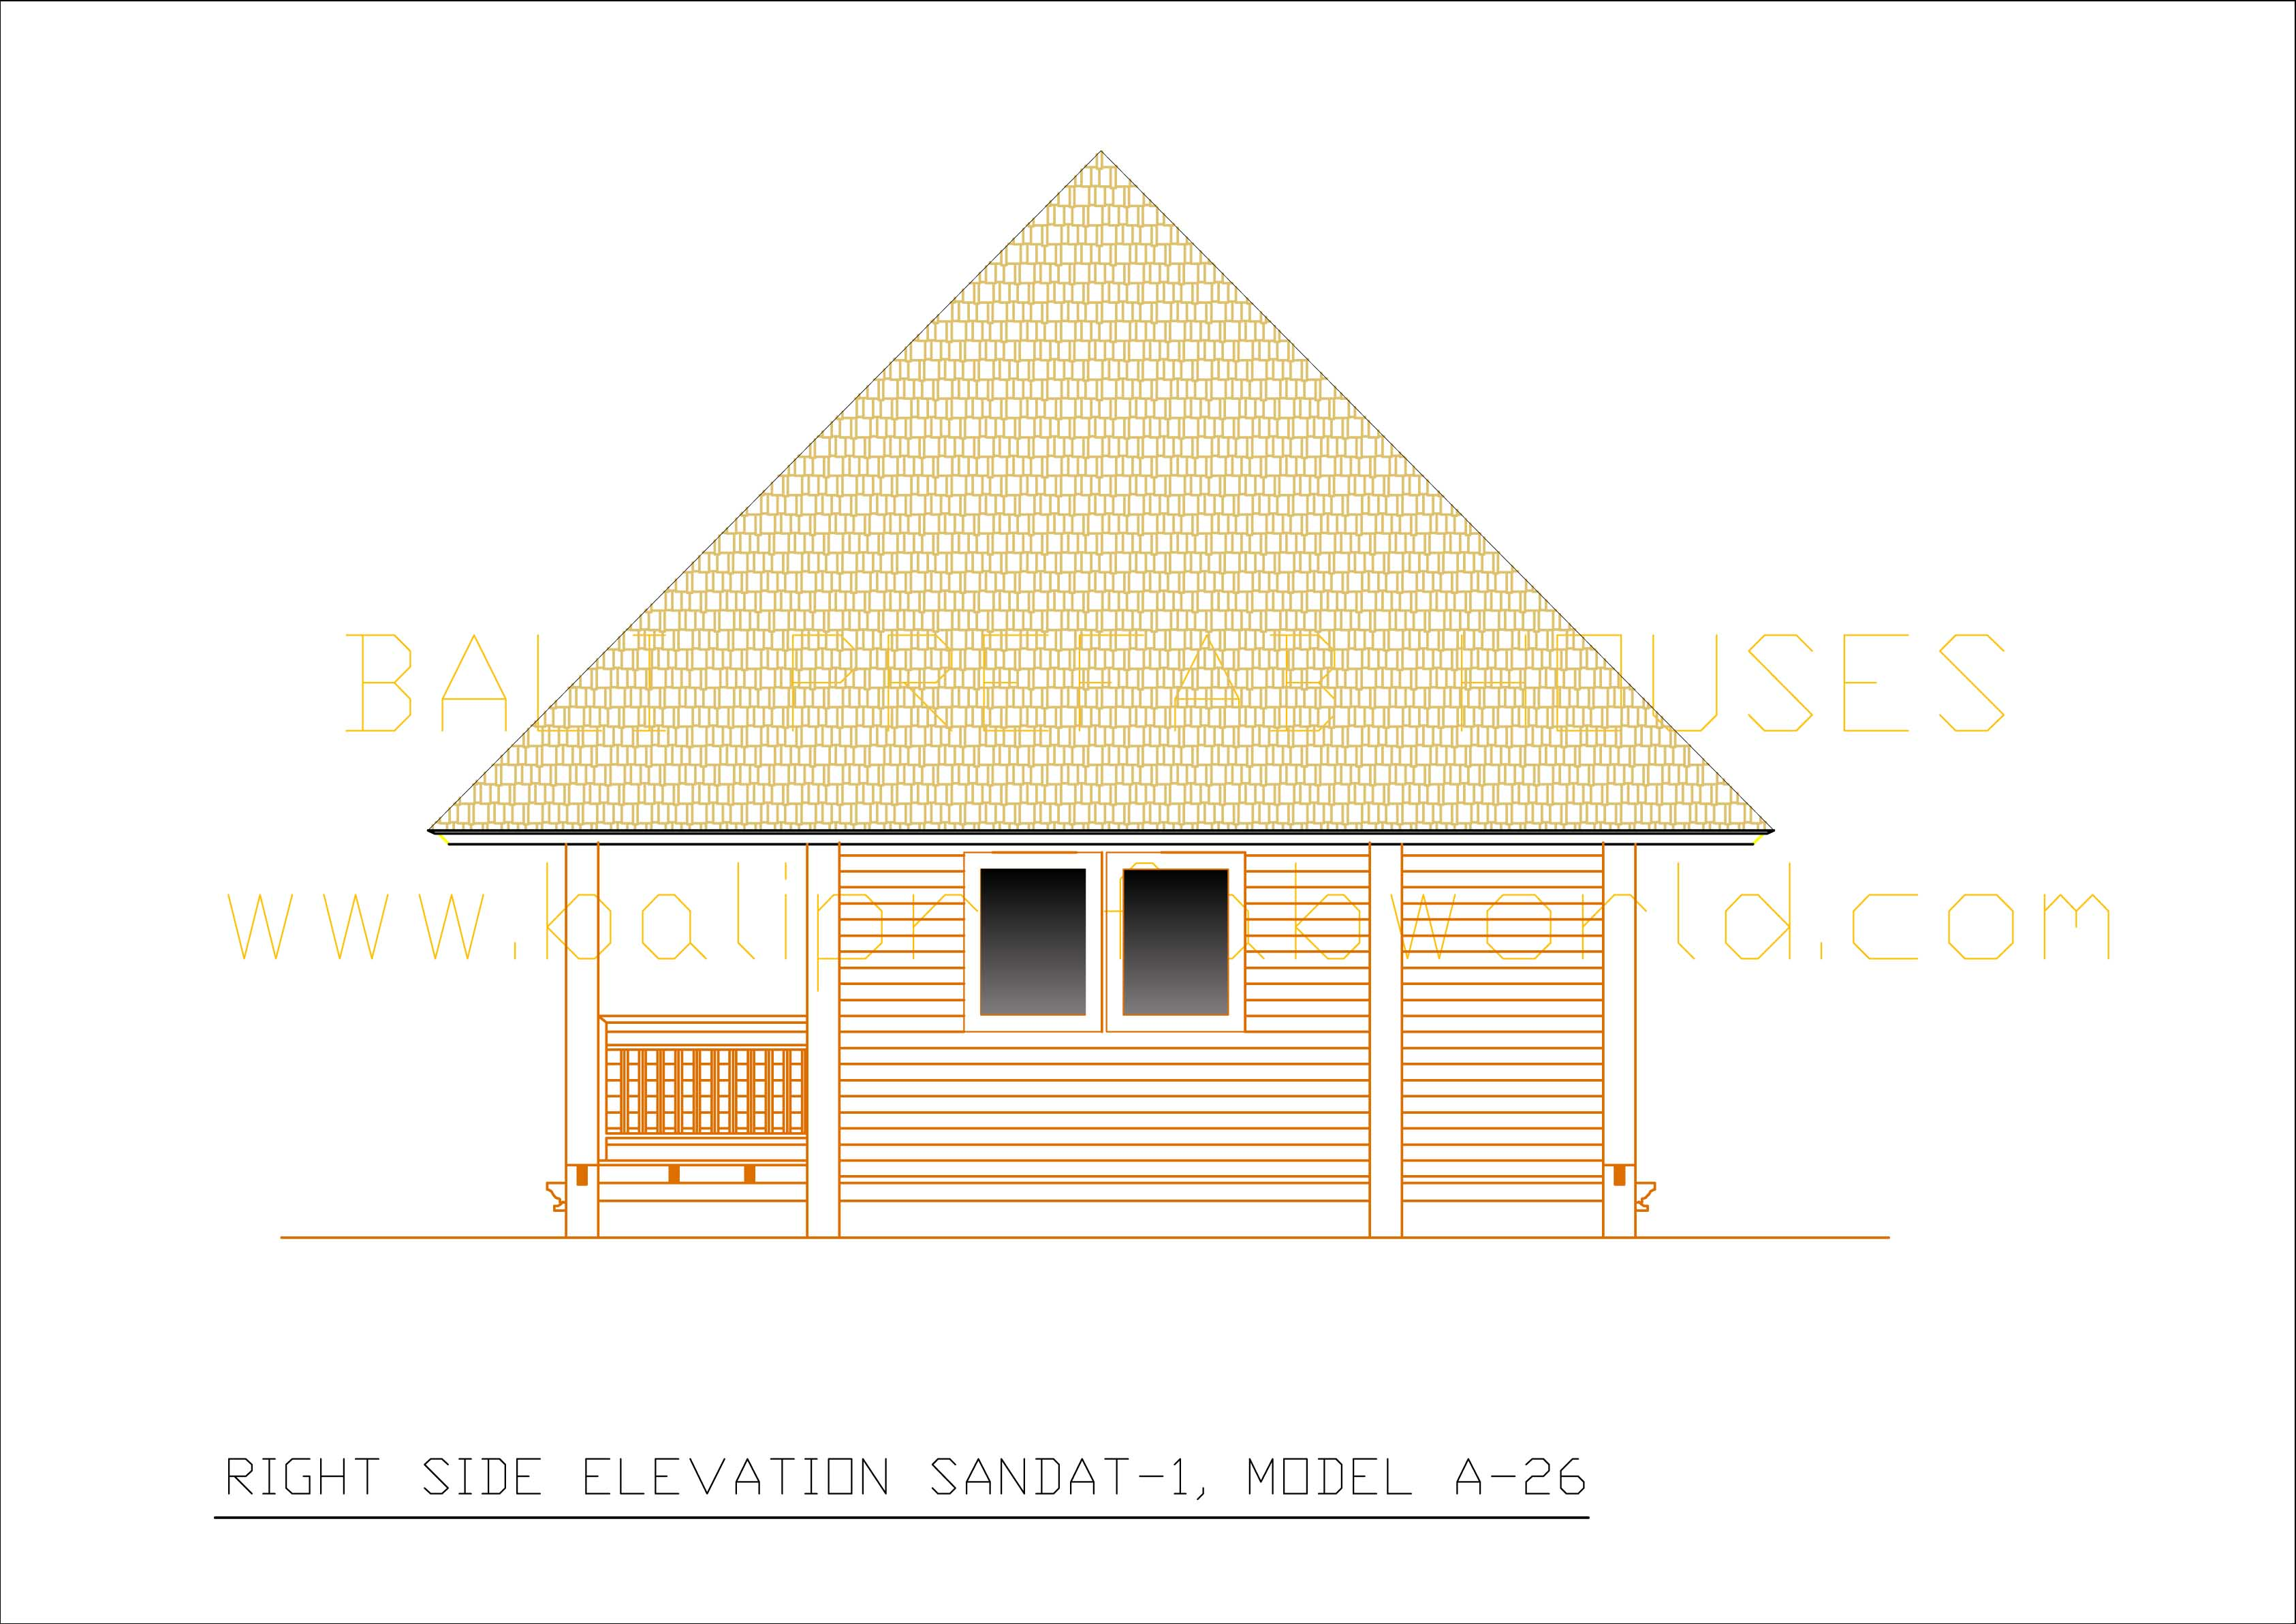 Sandat-1 right side elevation